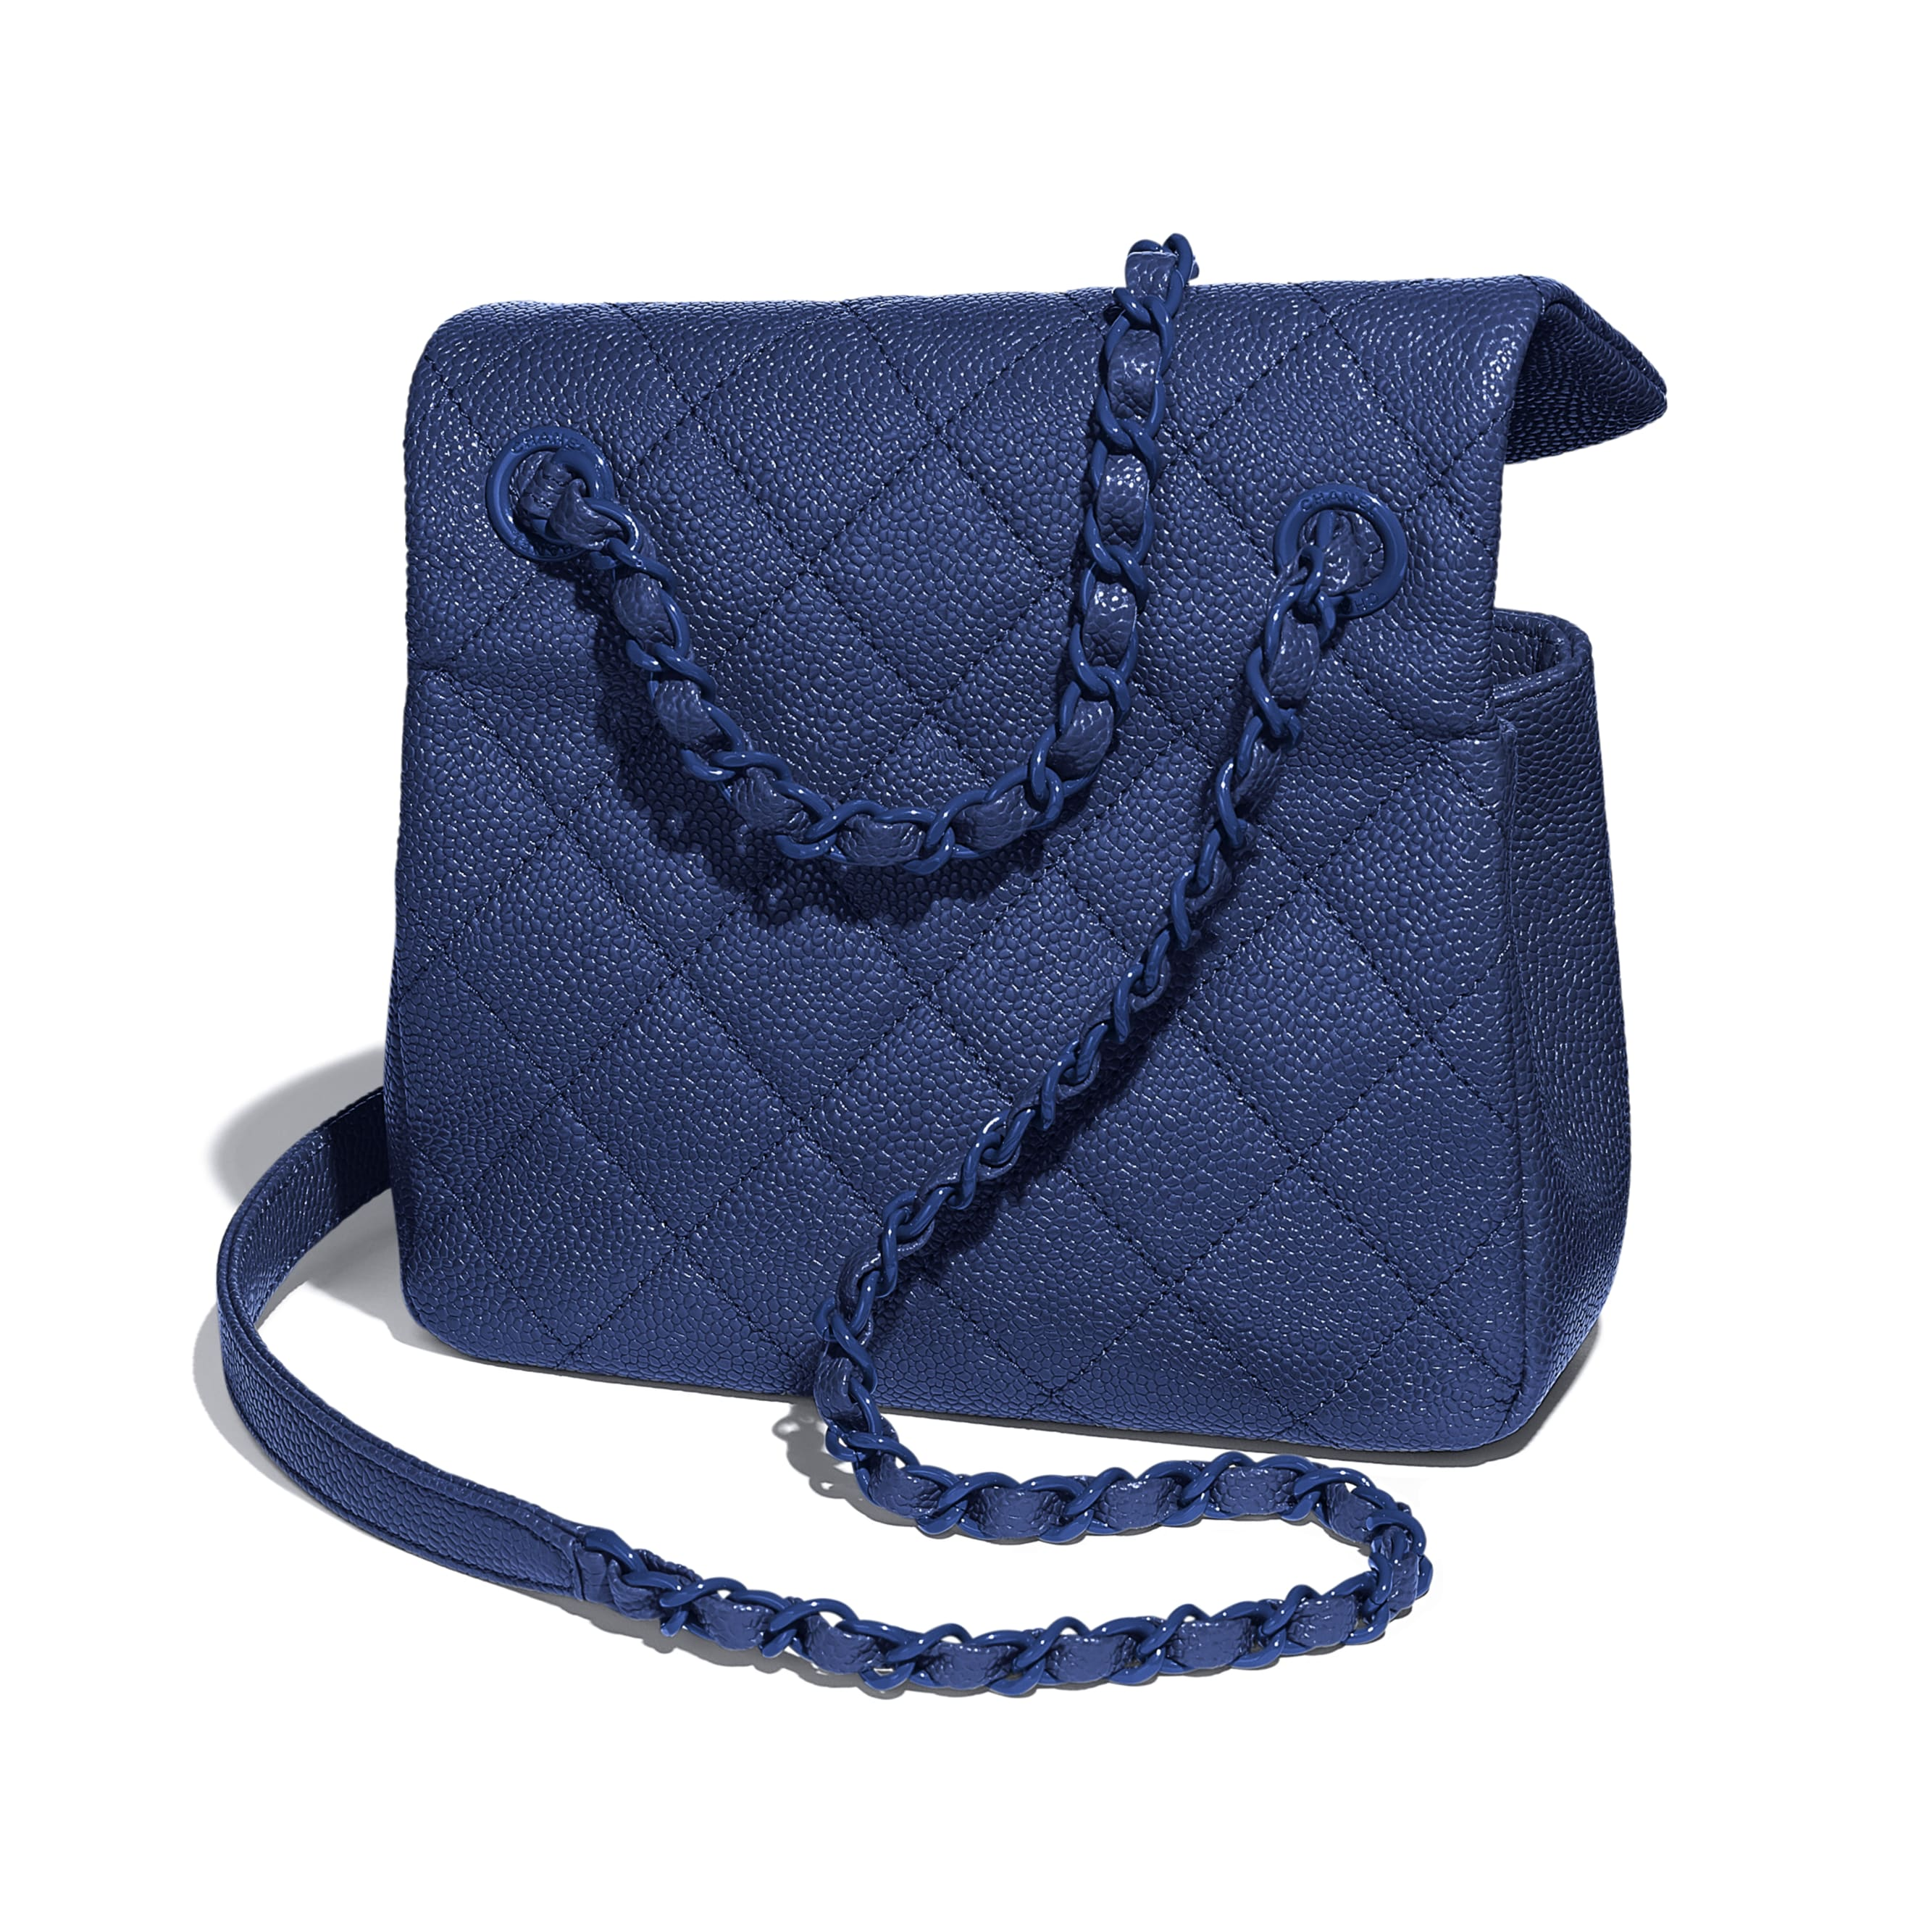 Flap Bag - Dark Blue - Grained Calfskin & Lacquered Metal - Extra view - see standard sized version